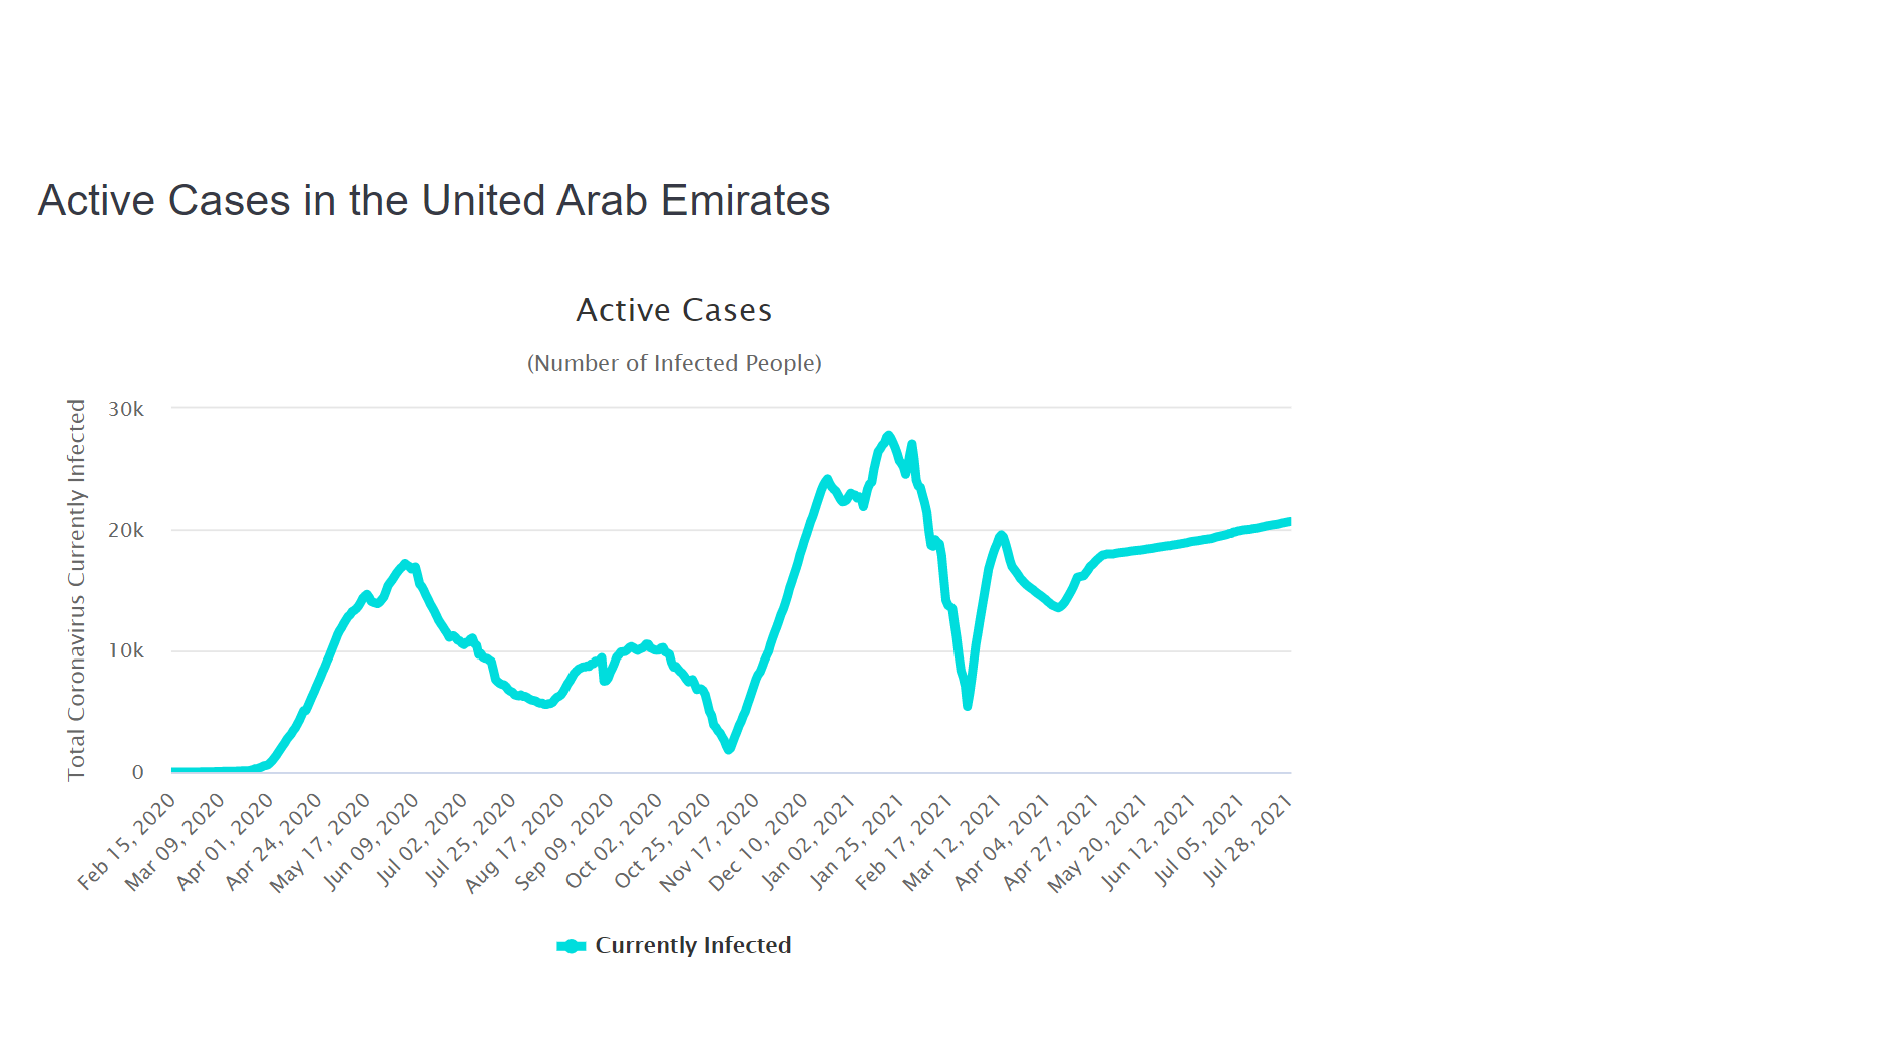 A chart of active cases in UAE with a dramatic increase at the end